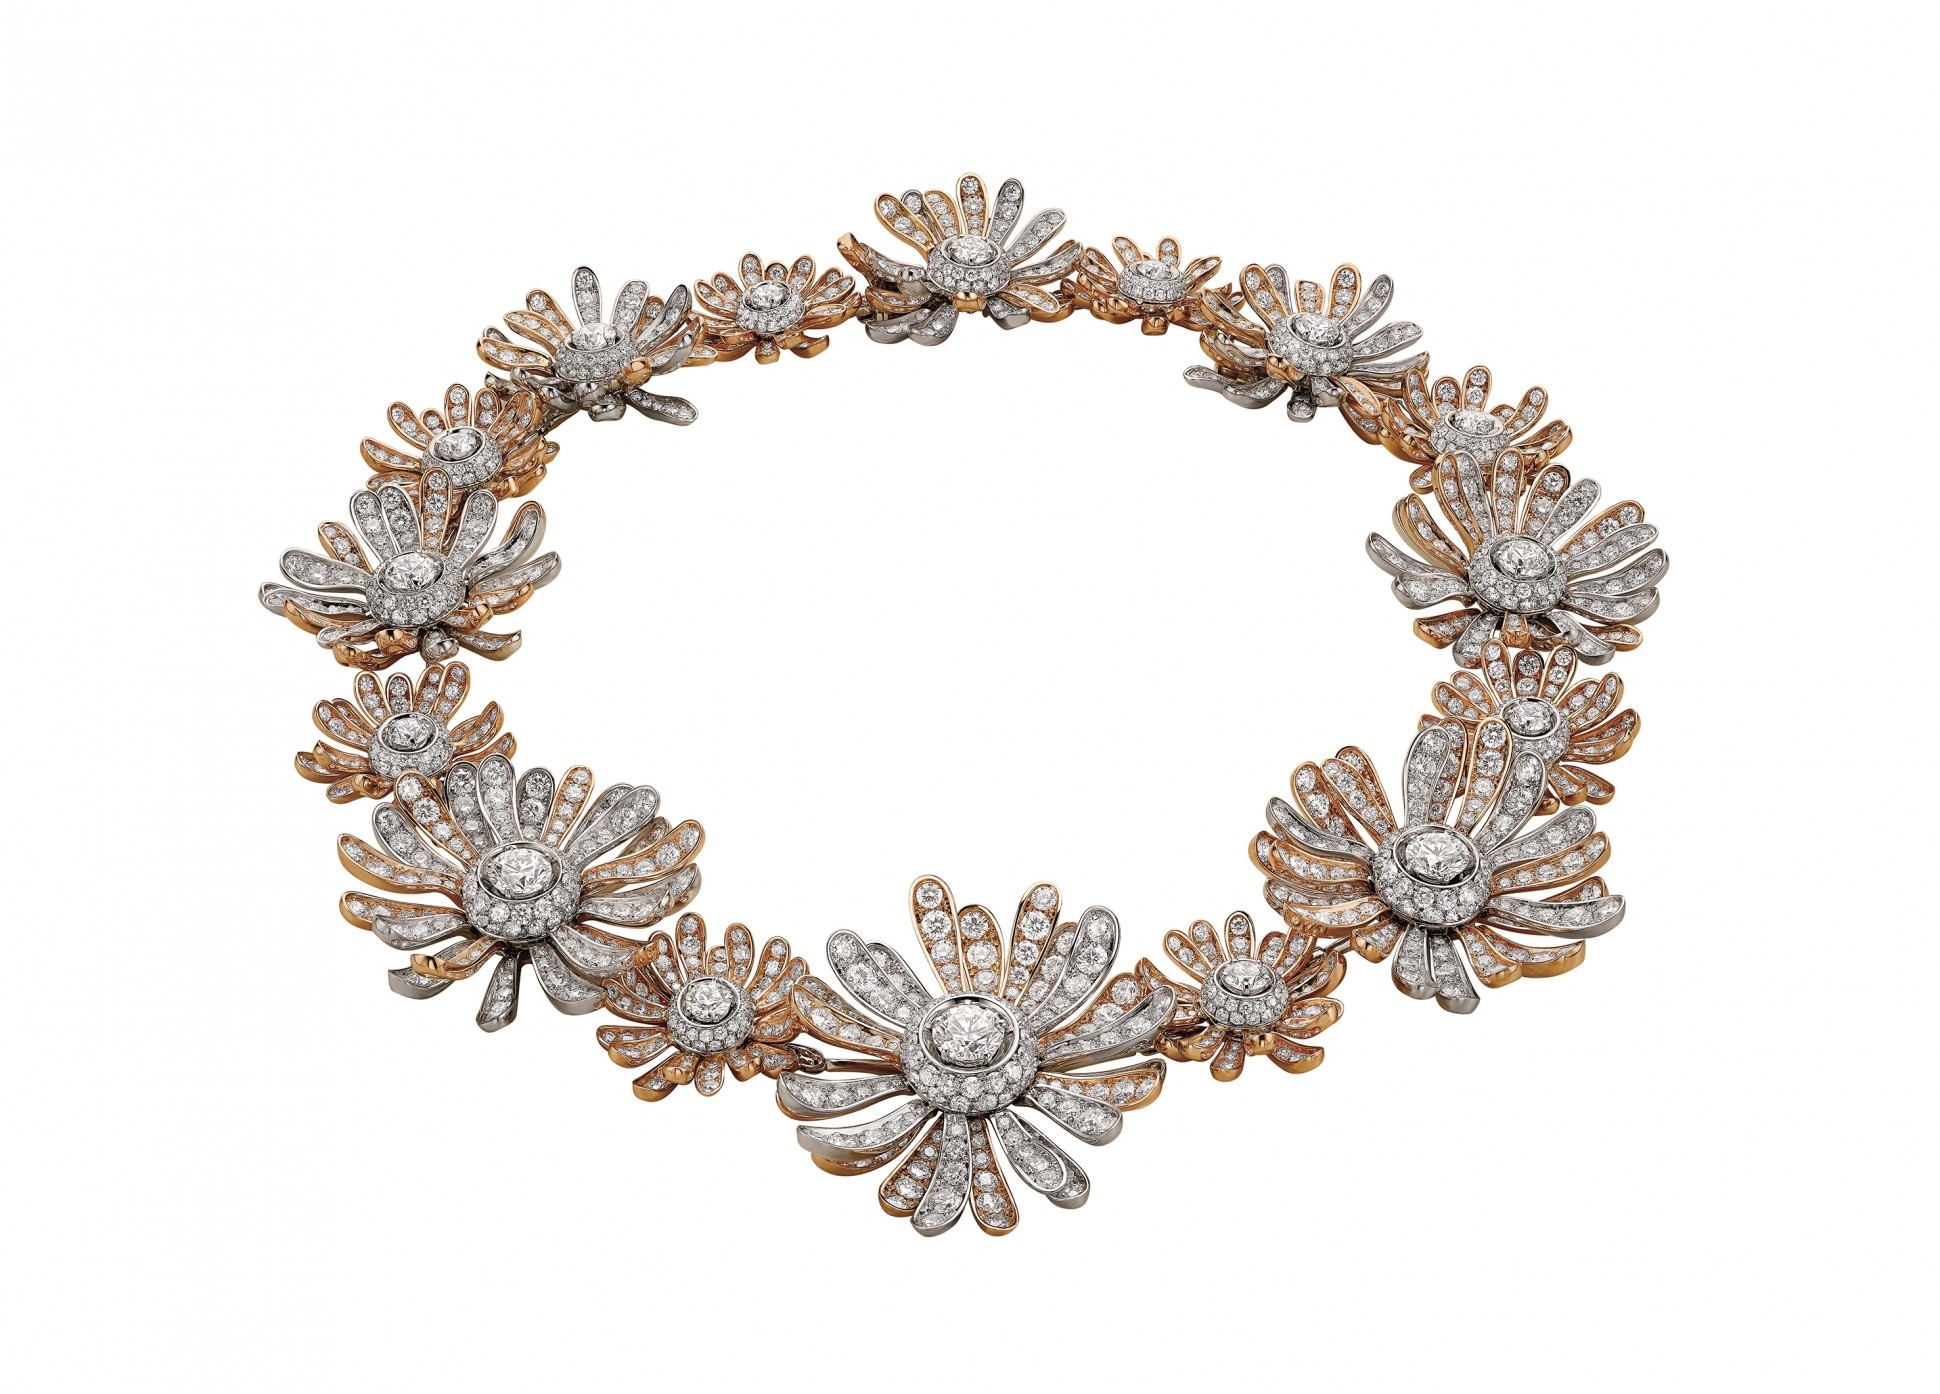 Bulgari's Spring Encounter Necklace